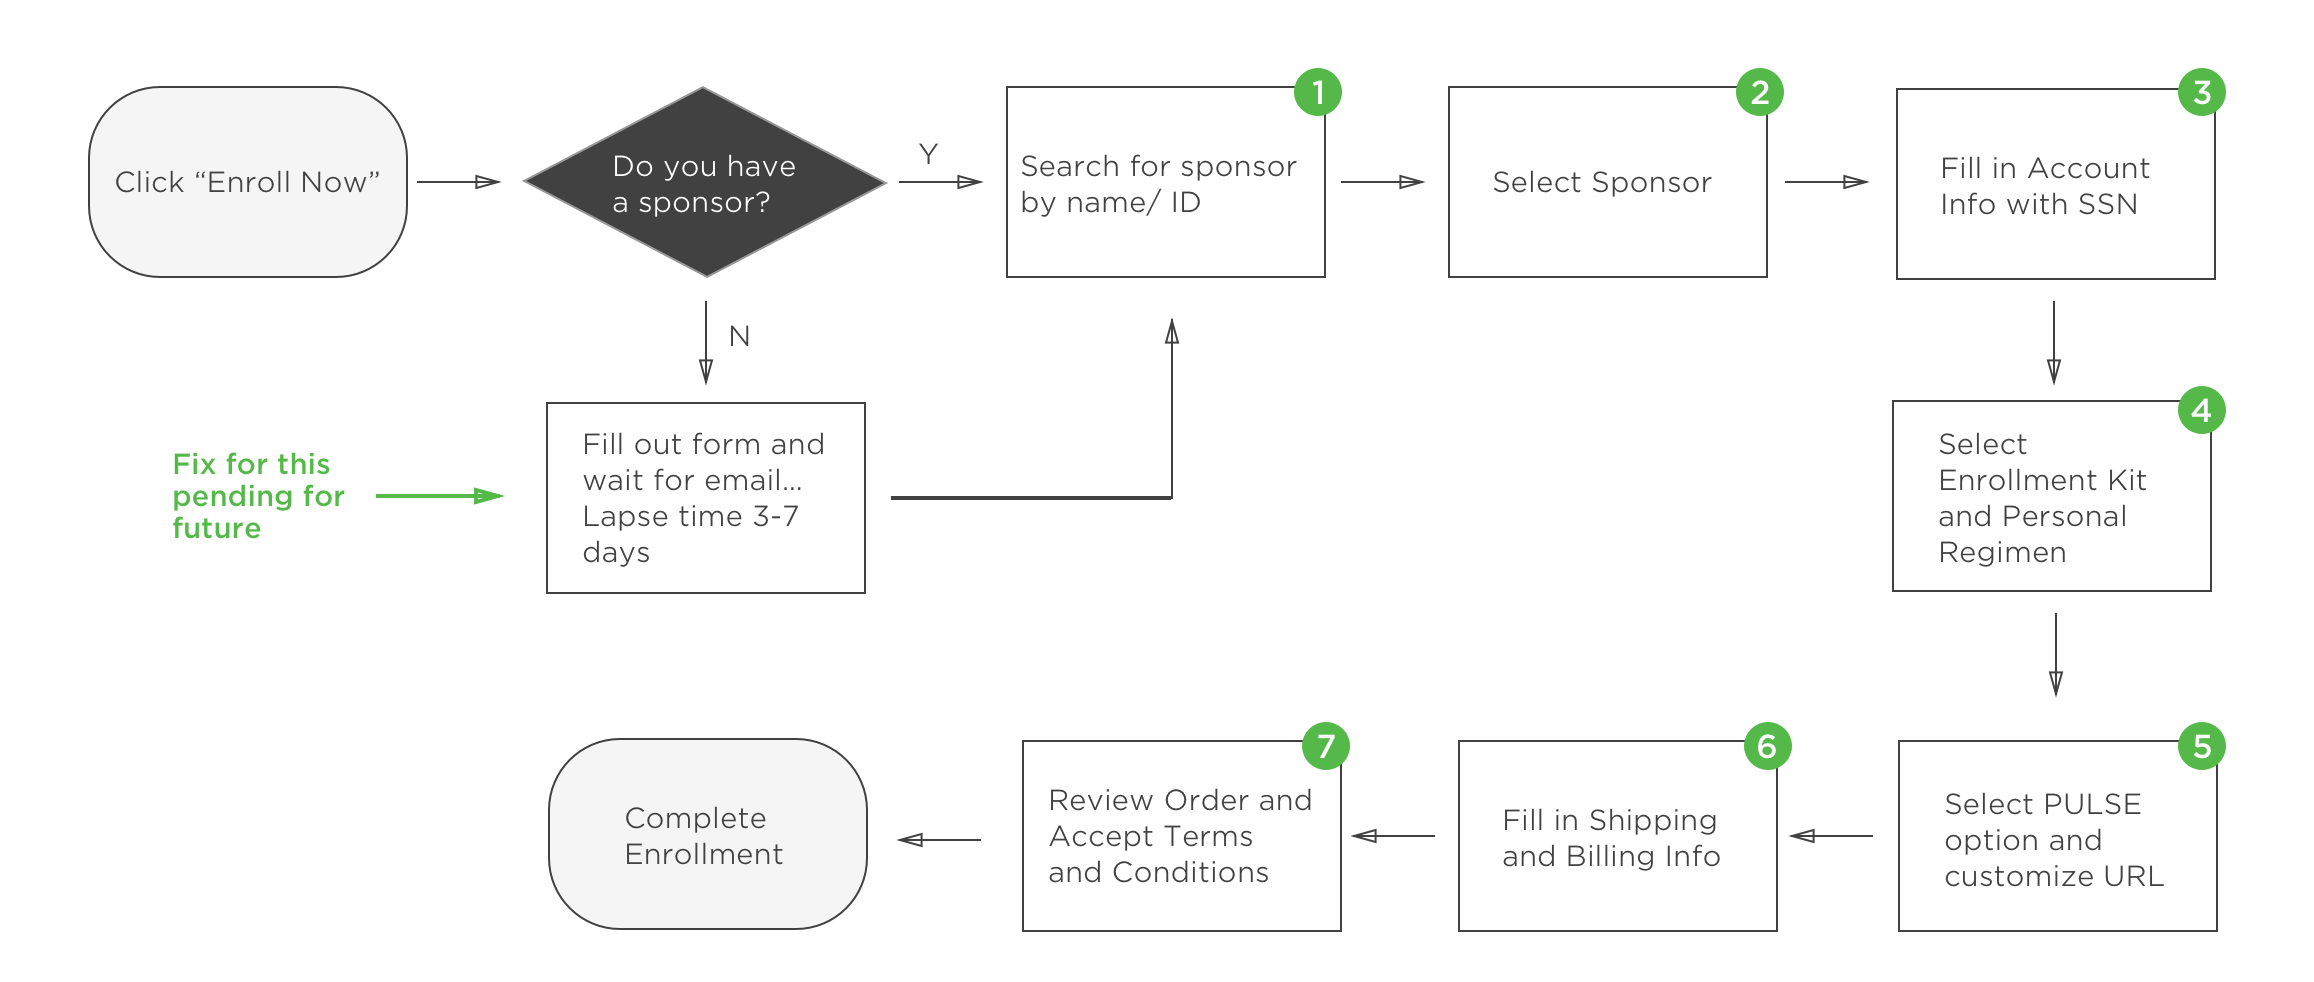 The optimized user flow